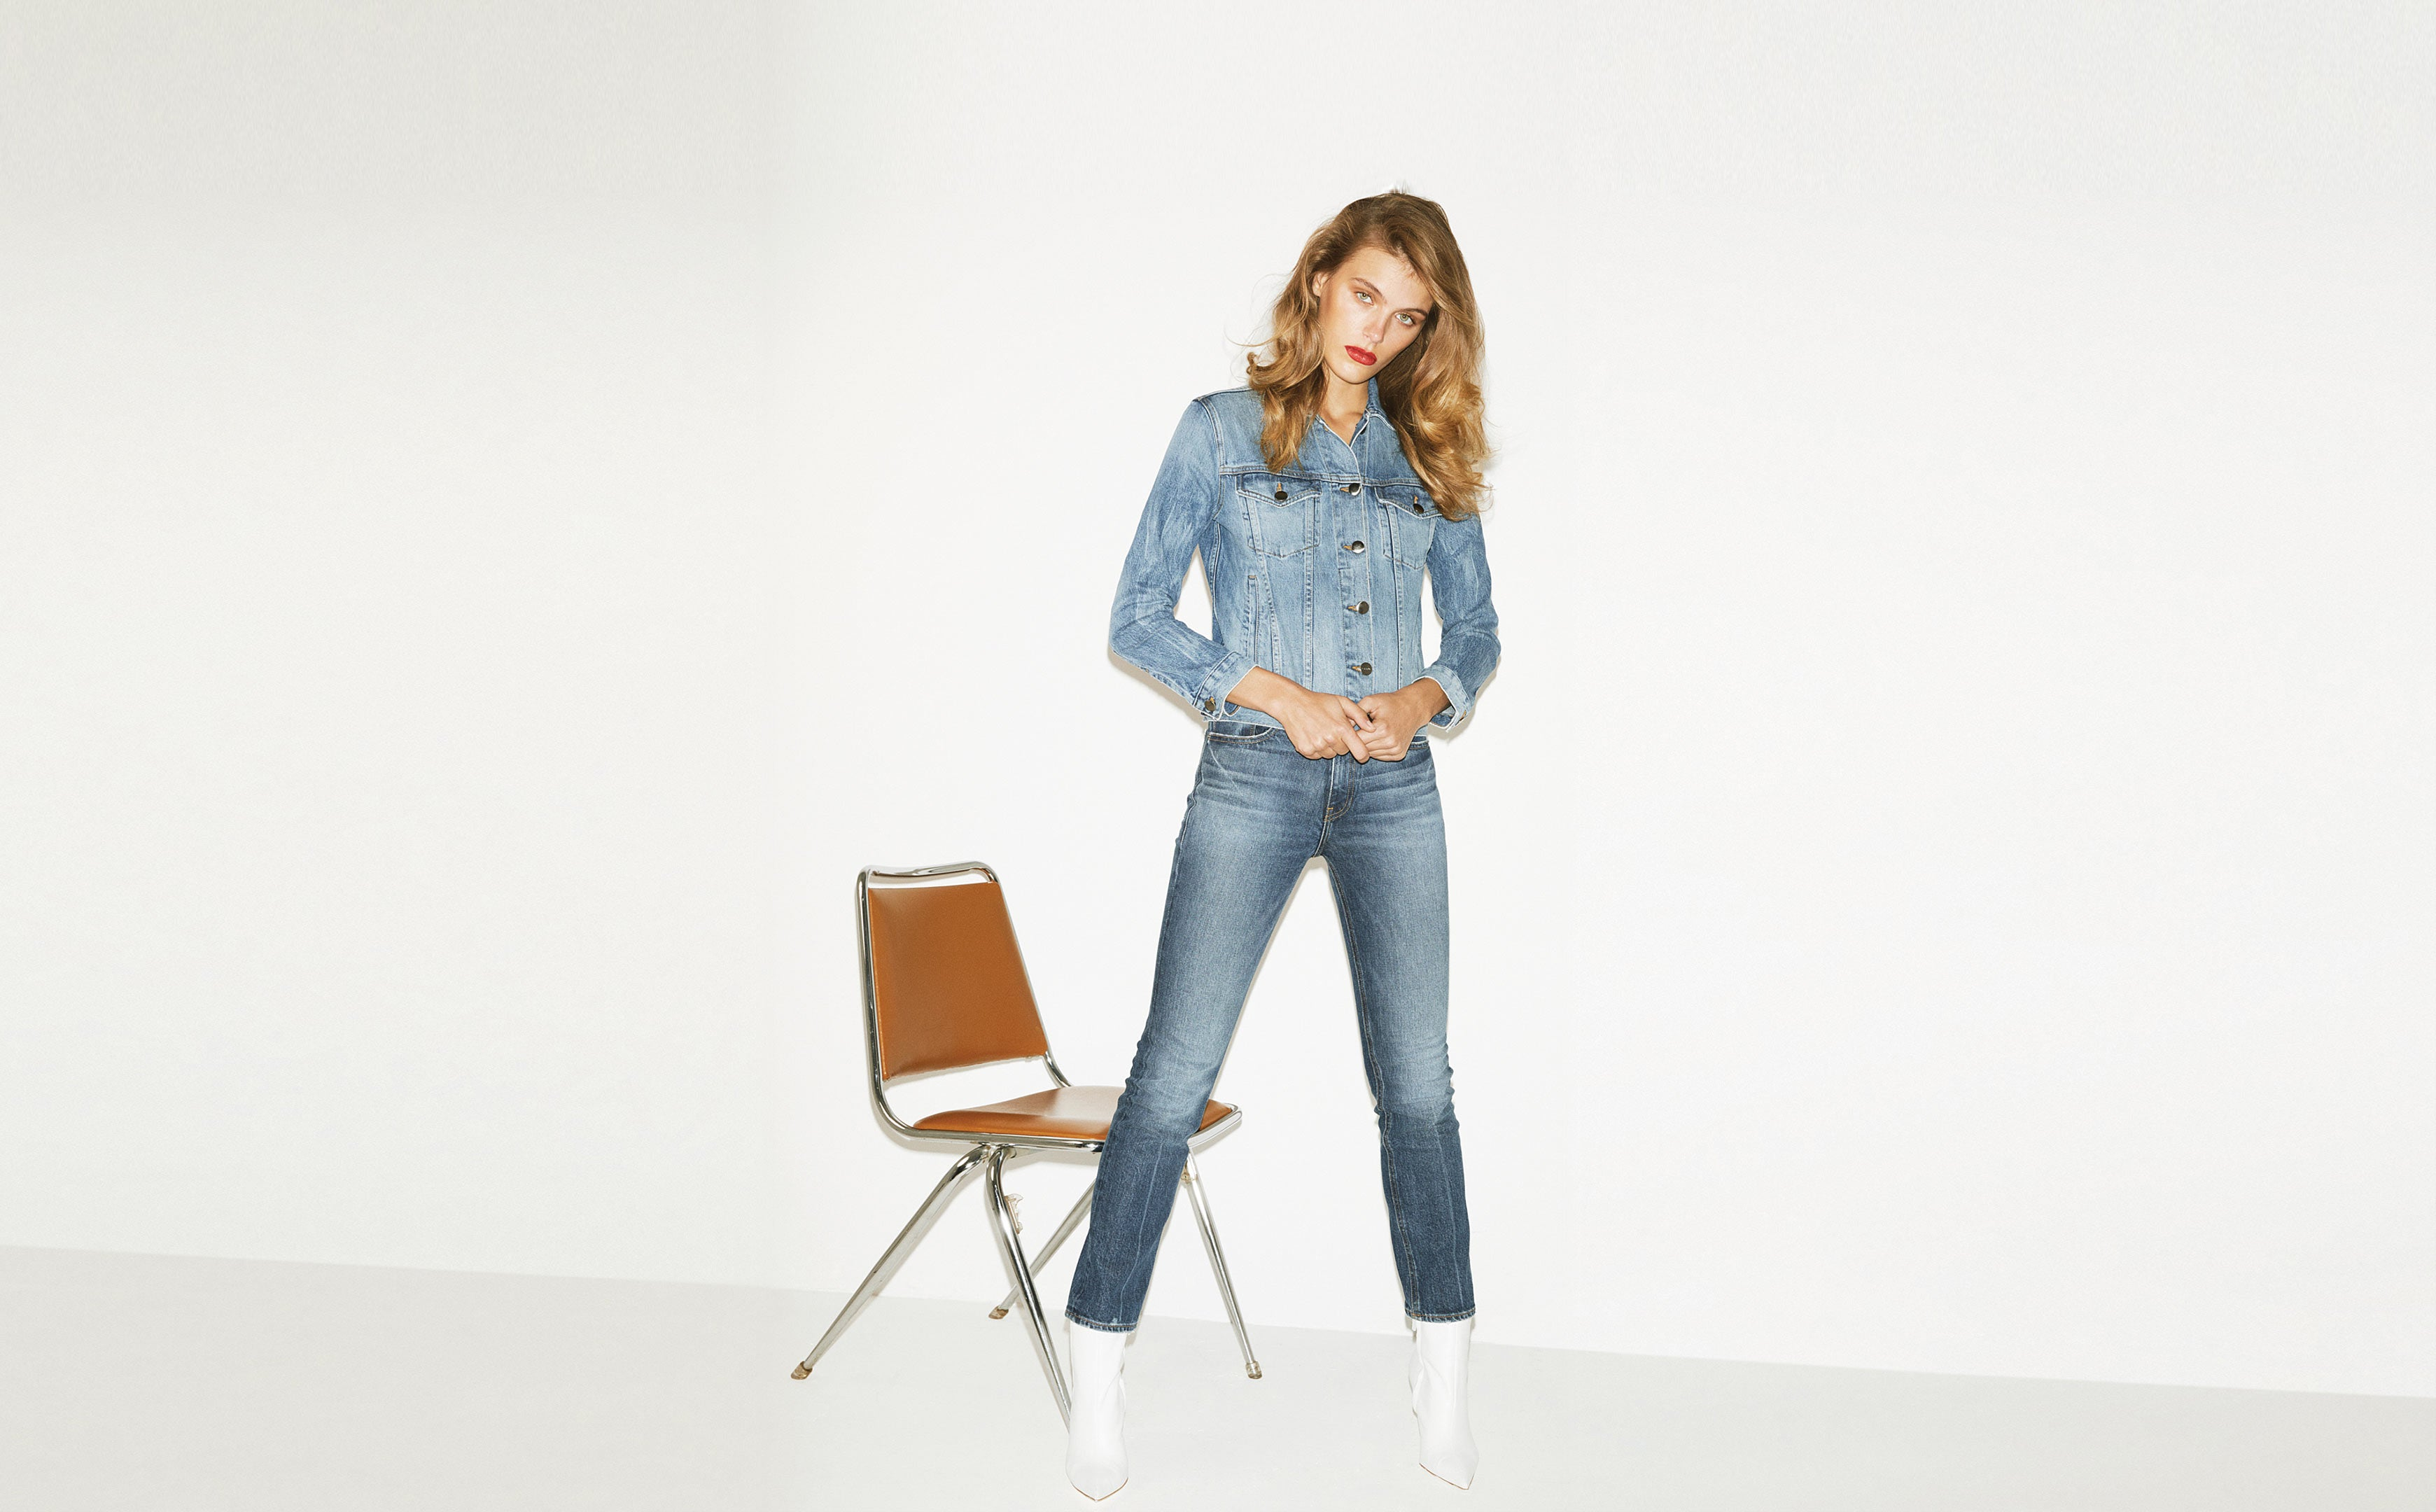 Pussy Print In Jeans